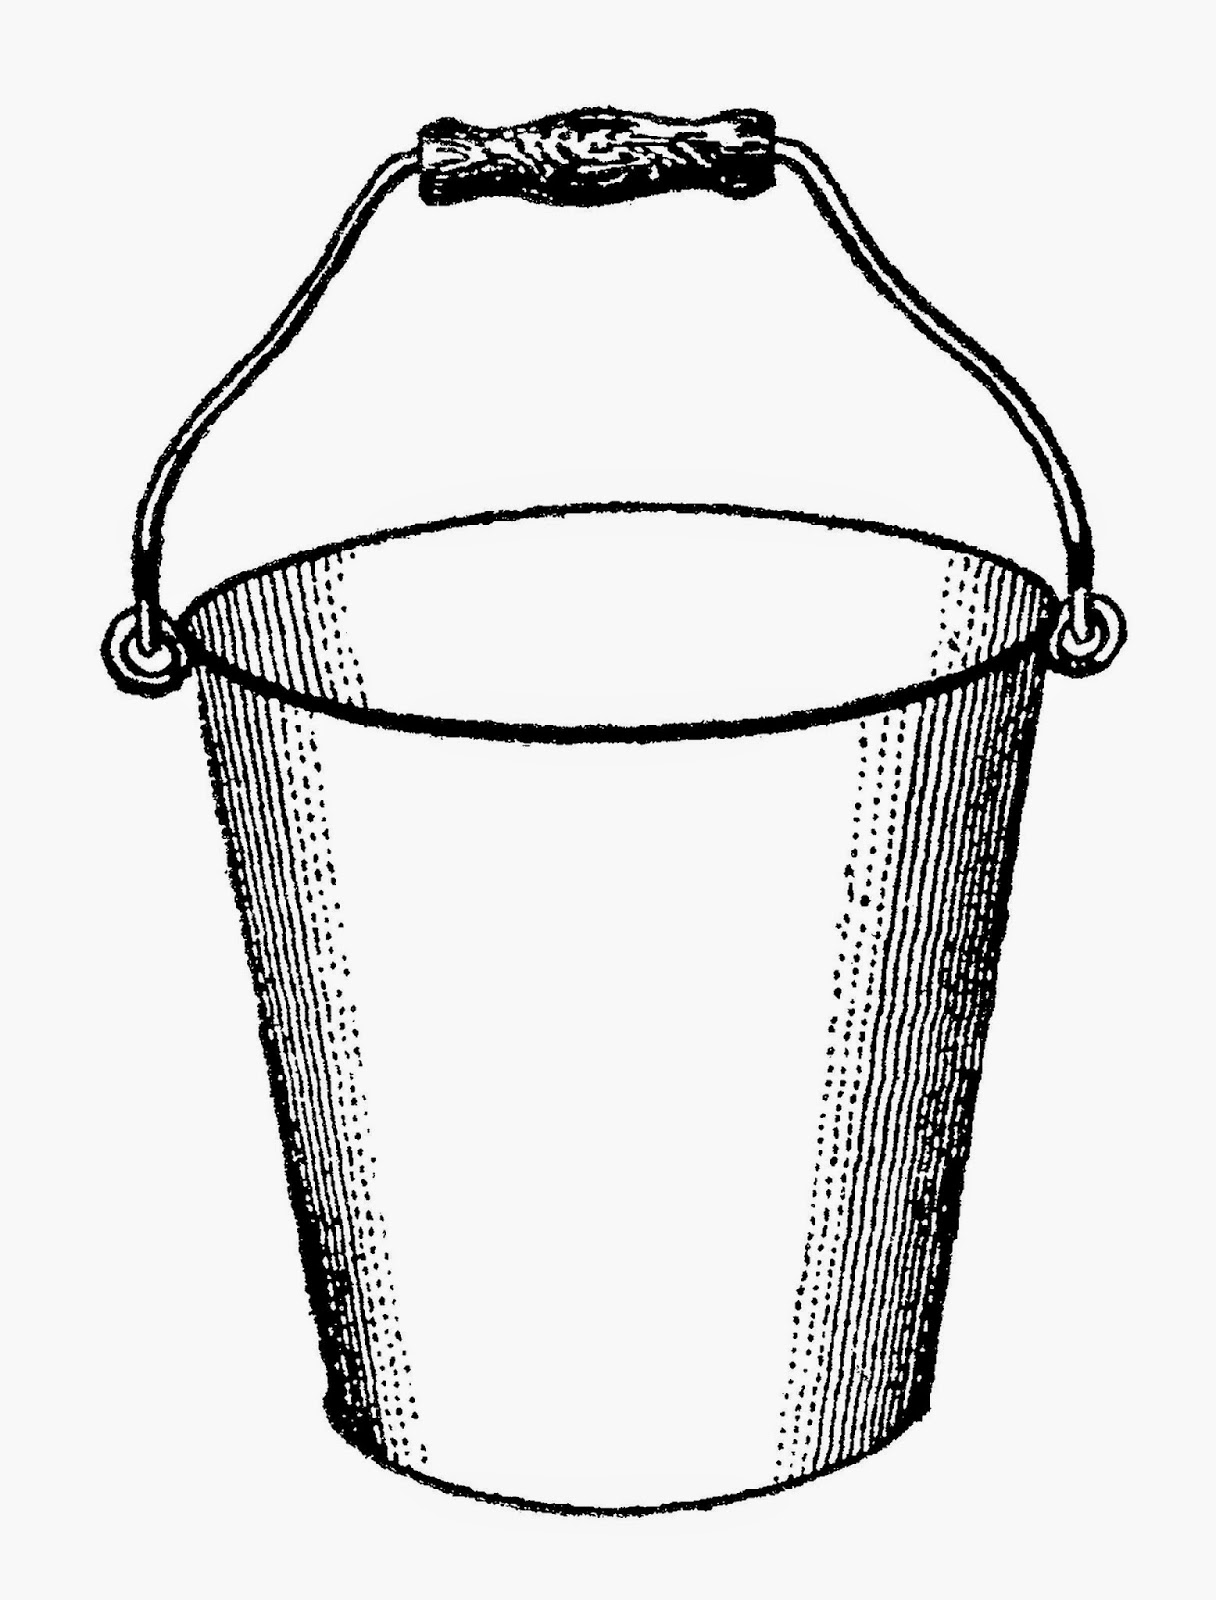 Clipart bucketnpouring water black and white transparent Free Water Bucket Cliparts, Download Free Clip Art, Free Clip Art on ... transparent